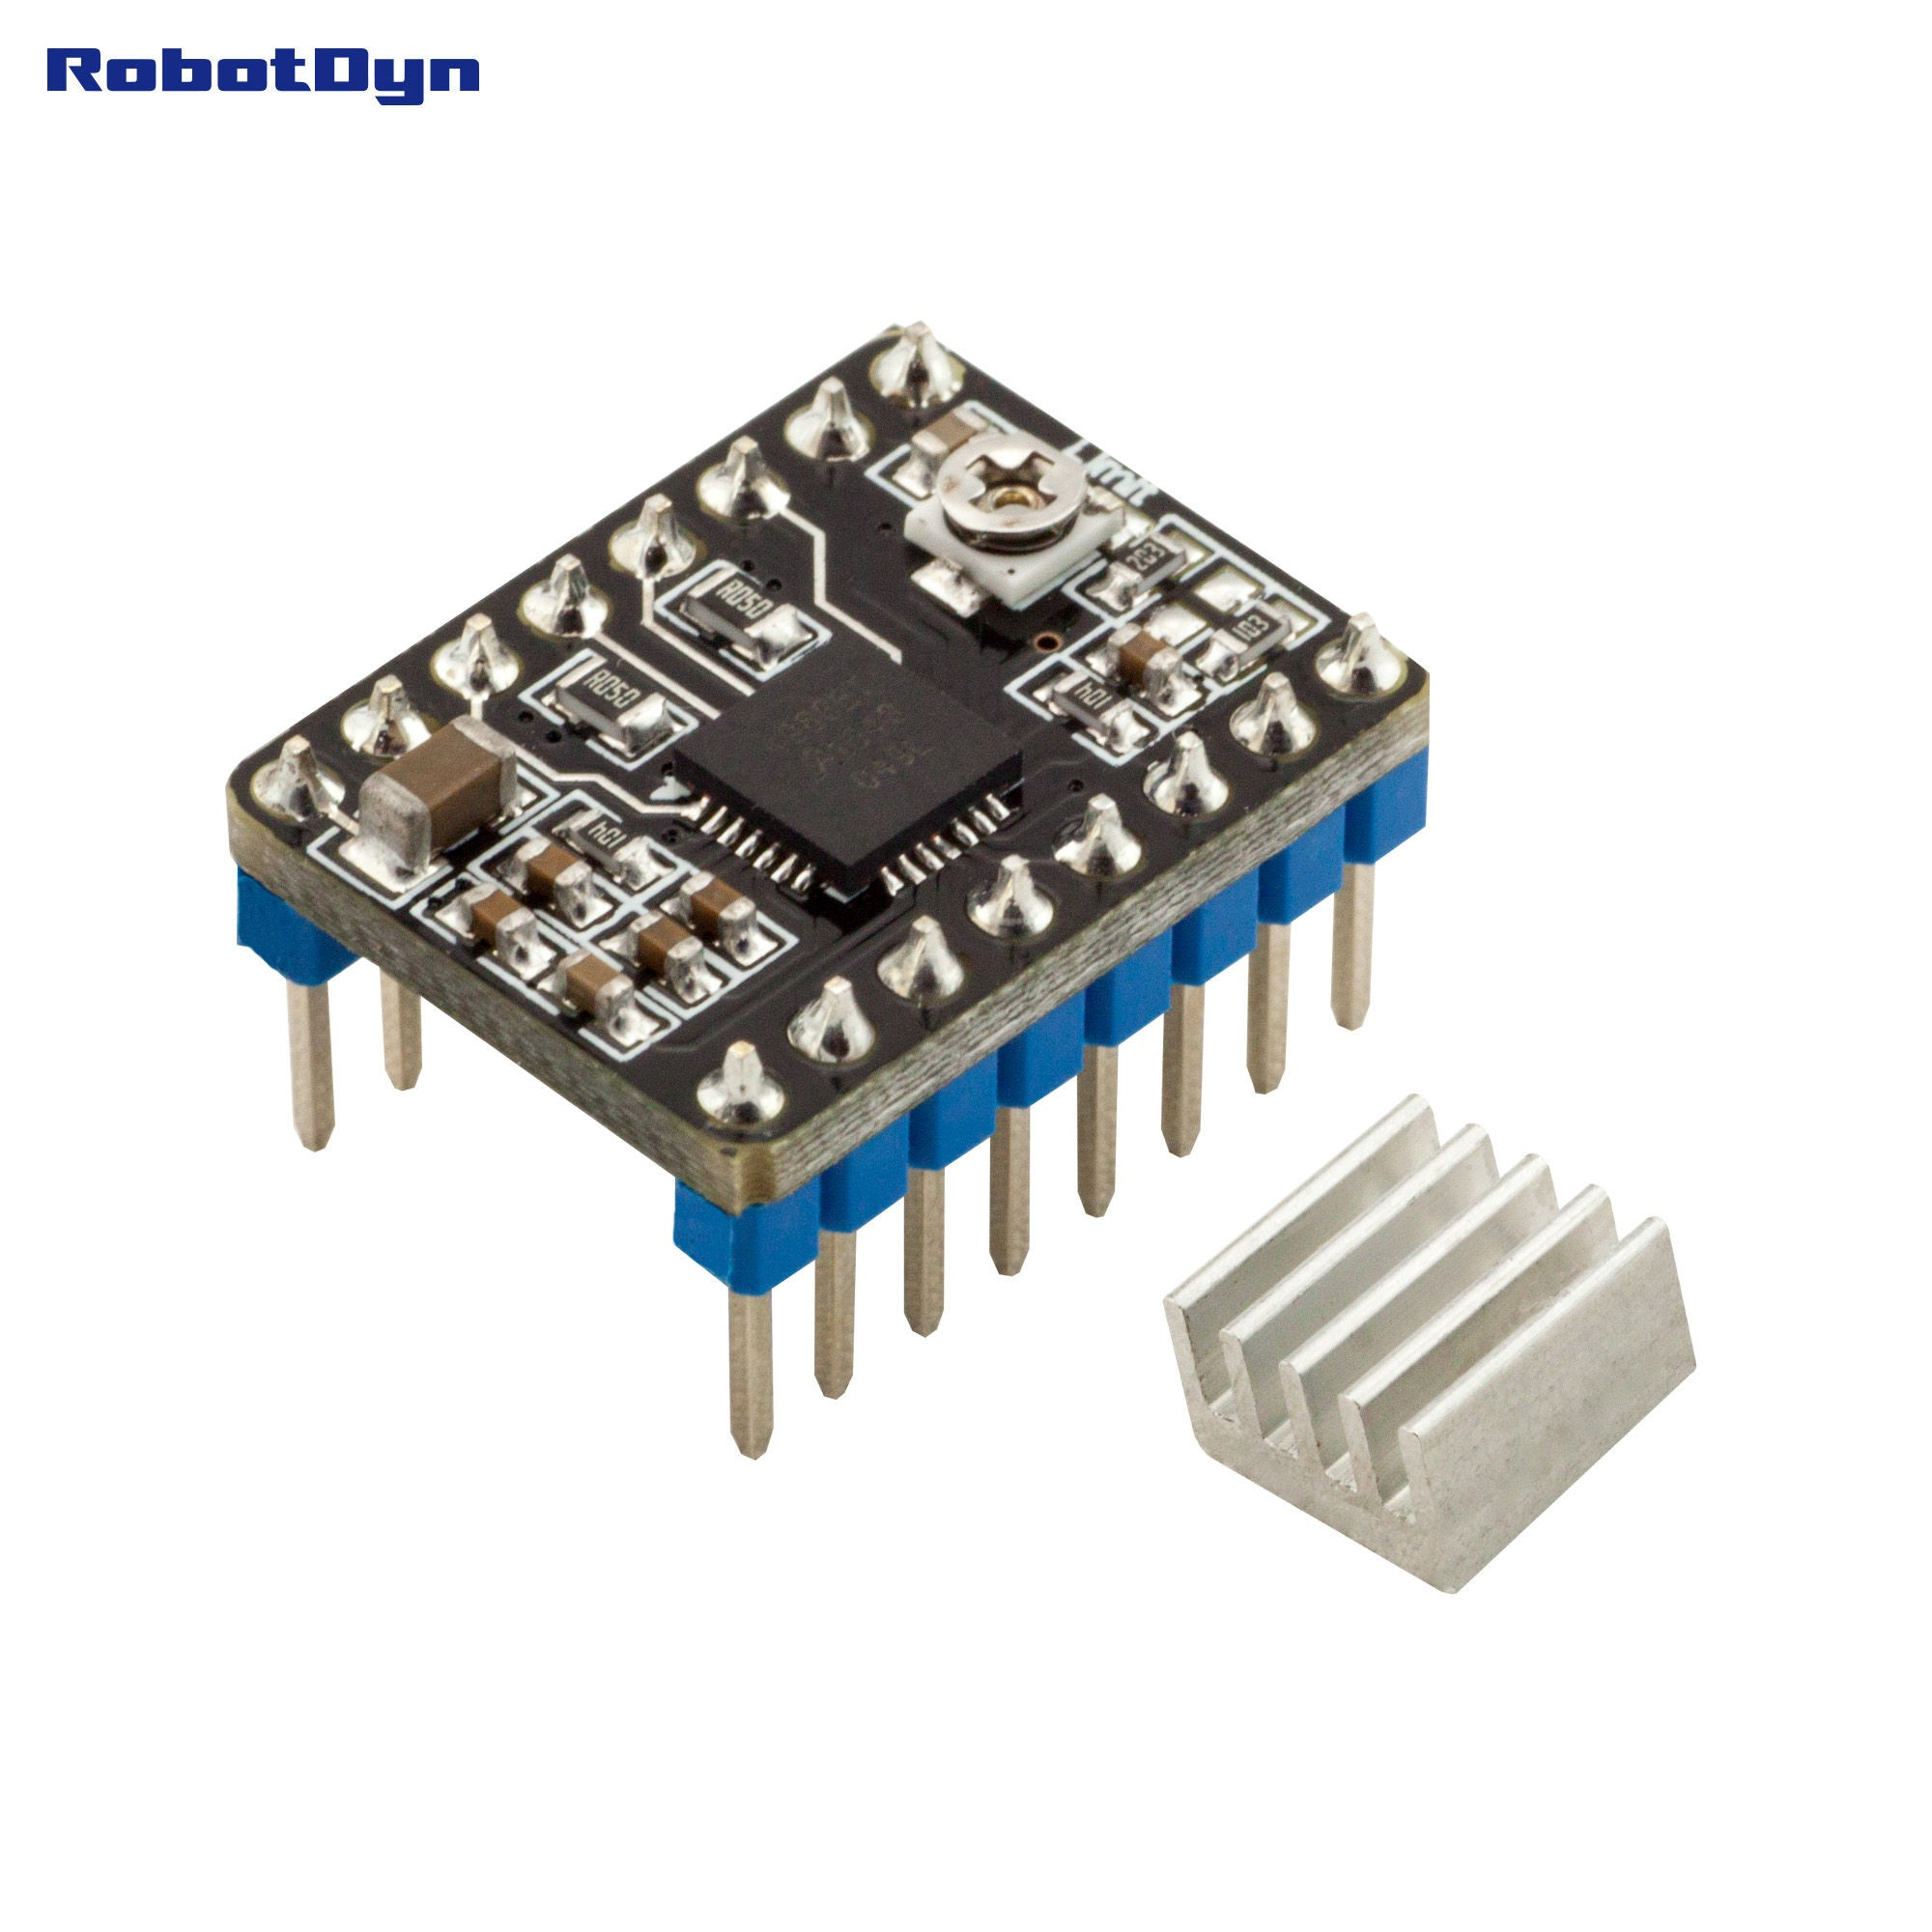 Stepper Motor Driver Circuit Using Transistor A4988 For 3d Printers With Heat Sink Green Electronics Store